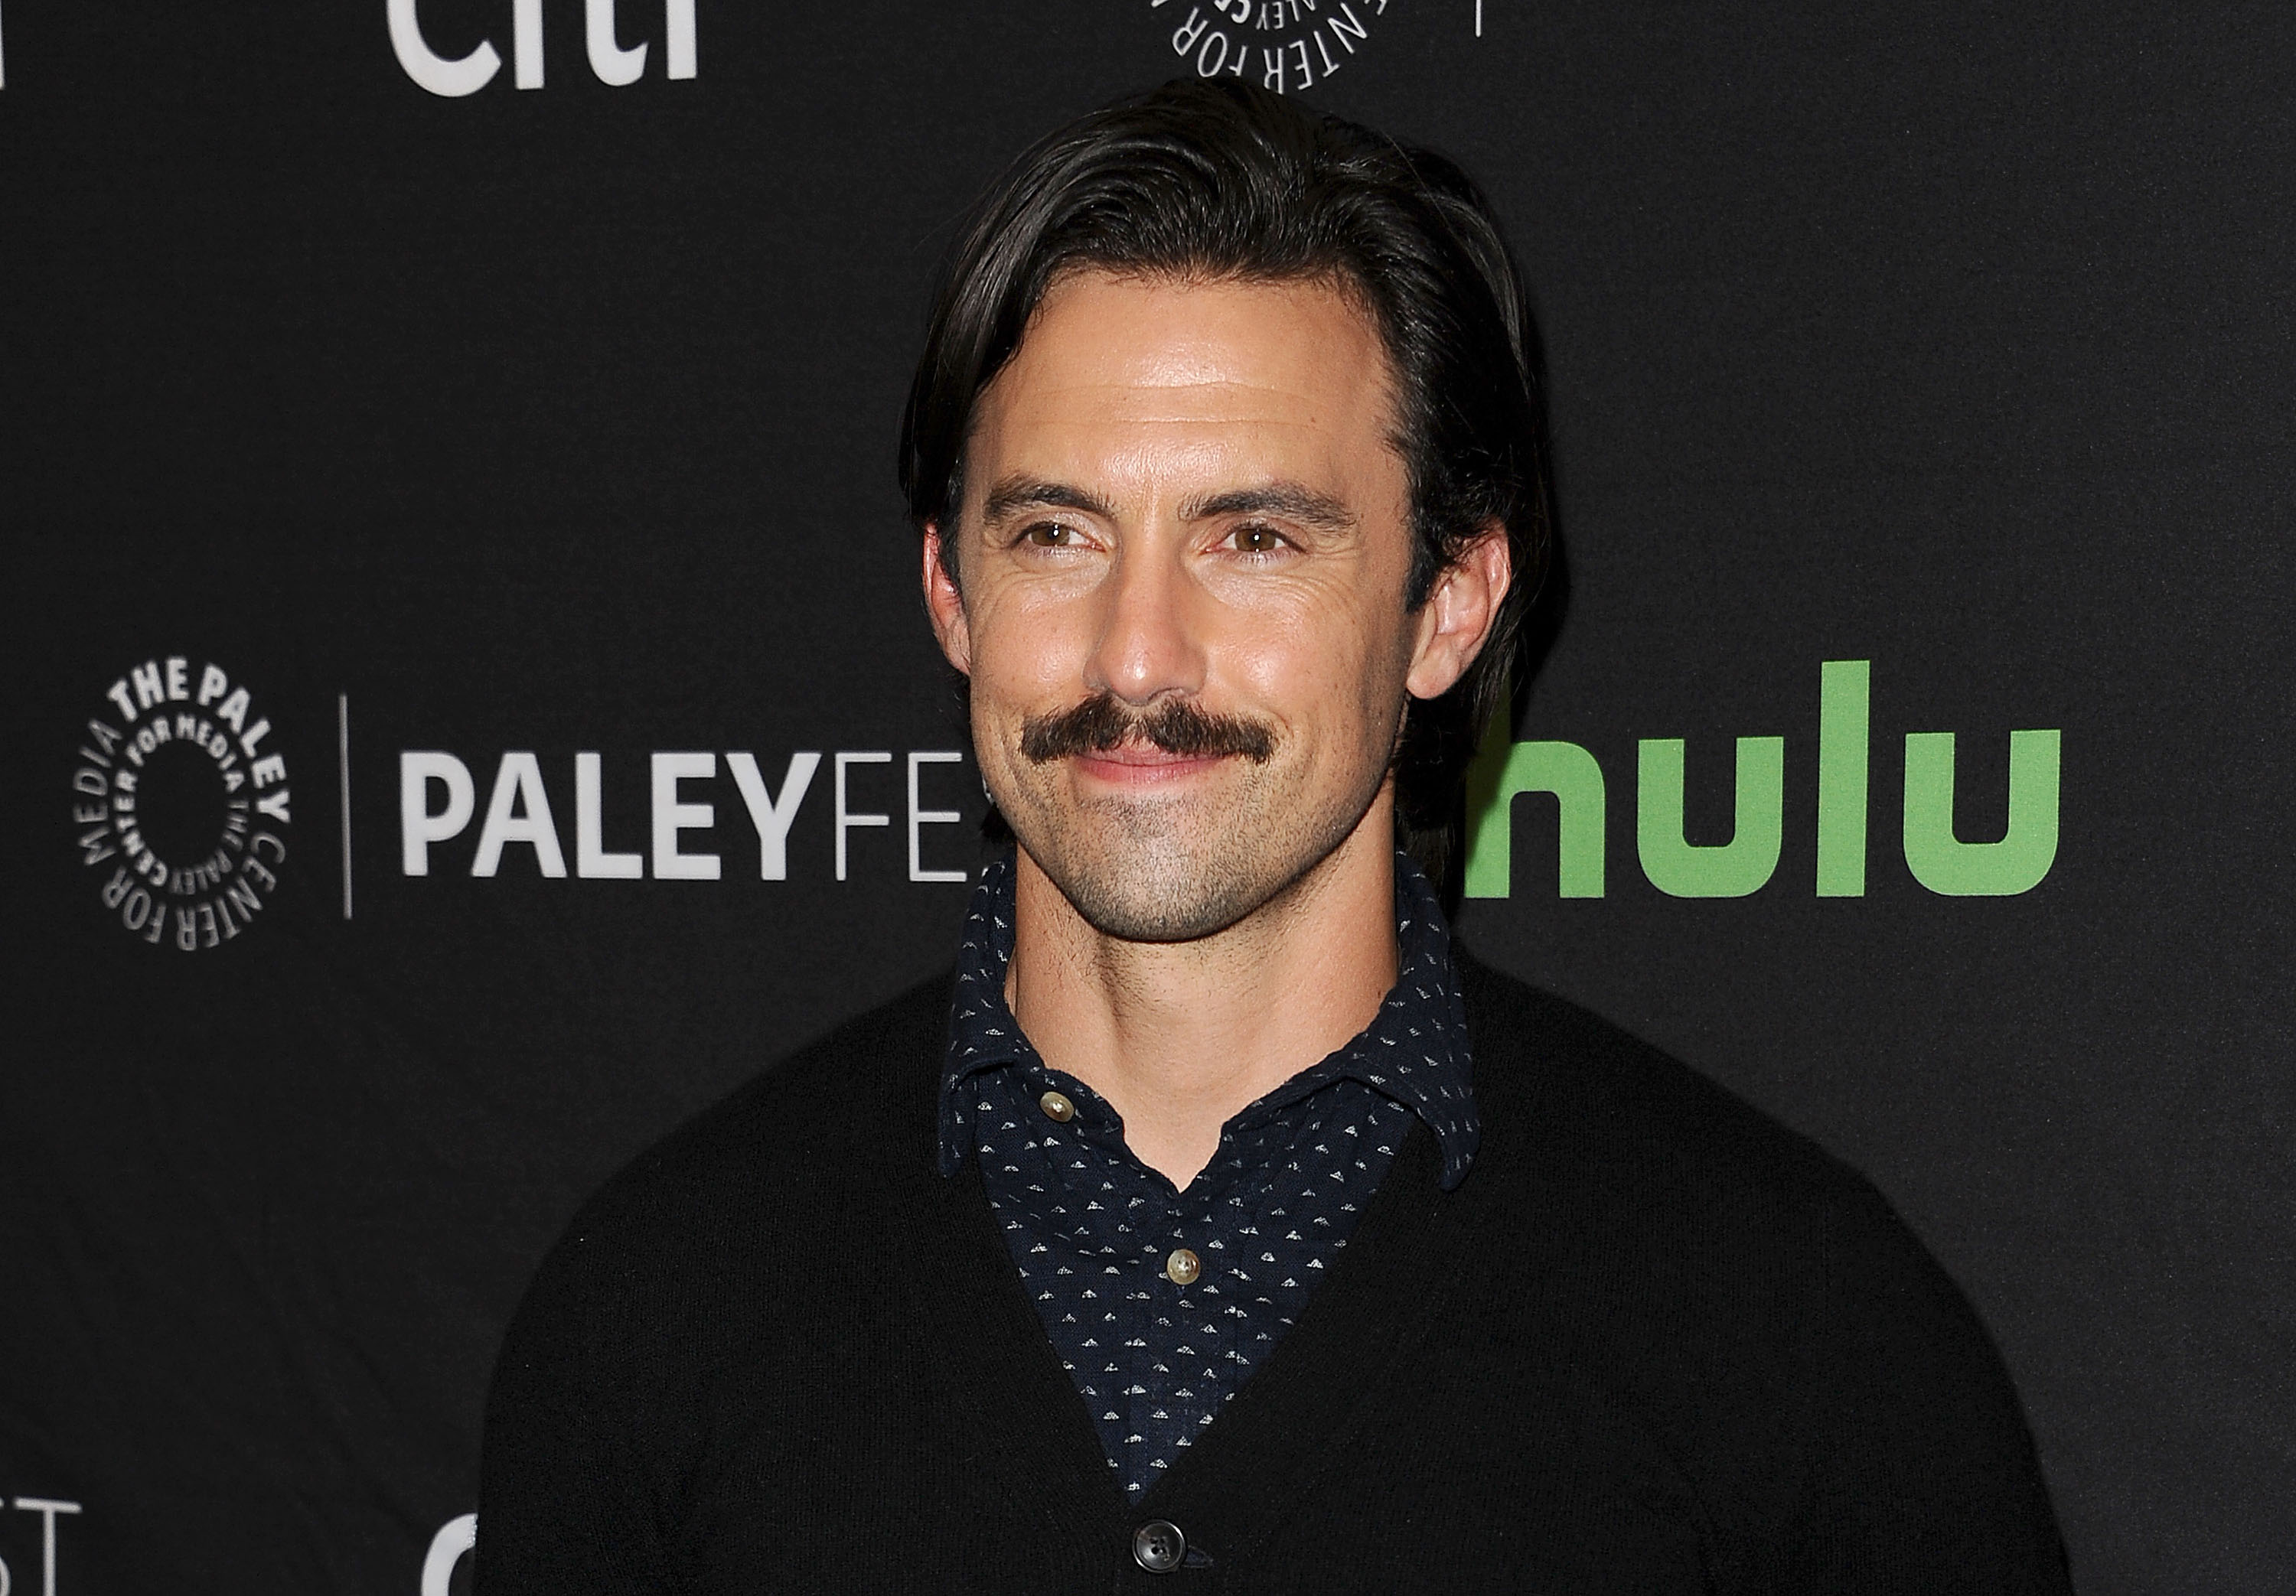 We now know why Milo Ventimiglia is rocking that awesome '80s 'stache, and it's a great reason